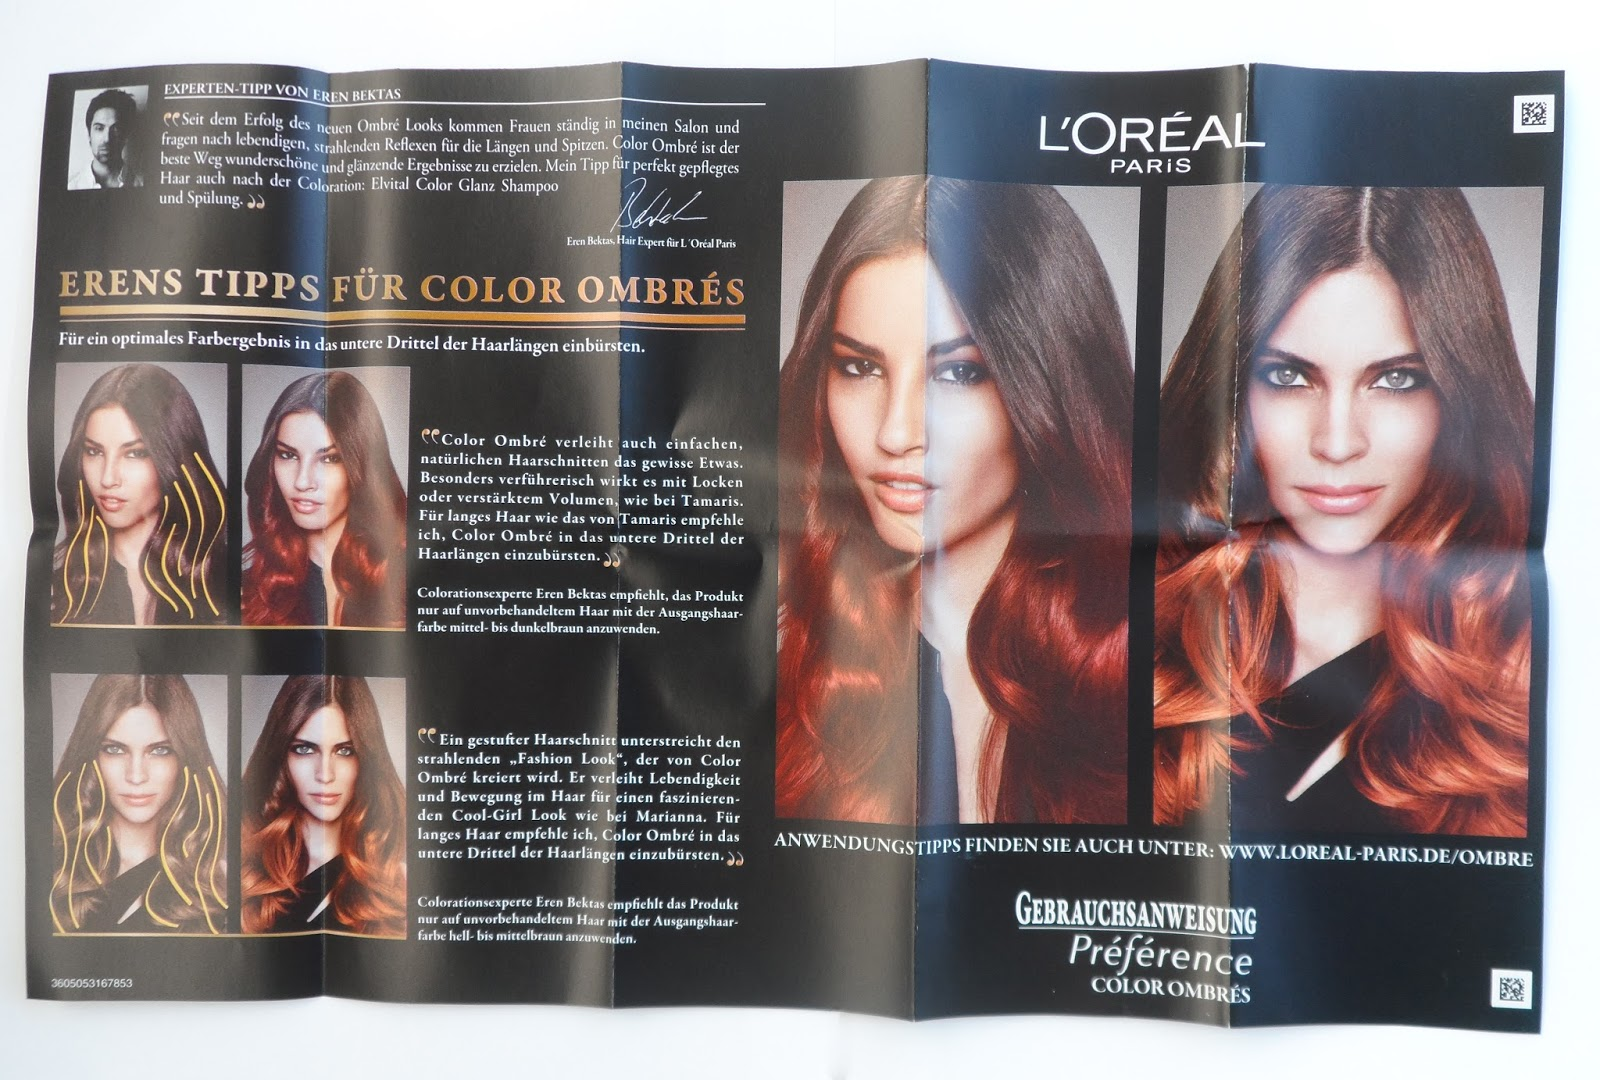 Dip Dye Selber Färben loreal color ombres preference dip dye look copper review another